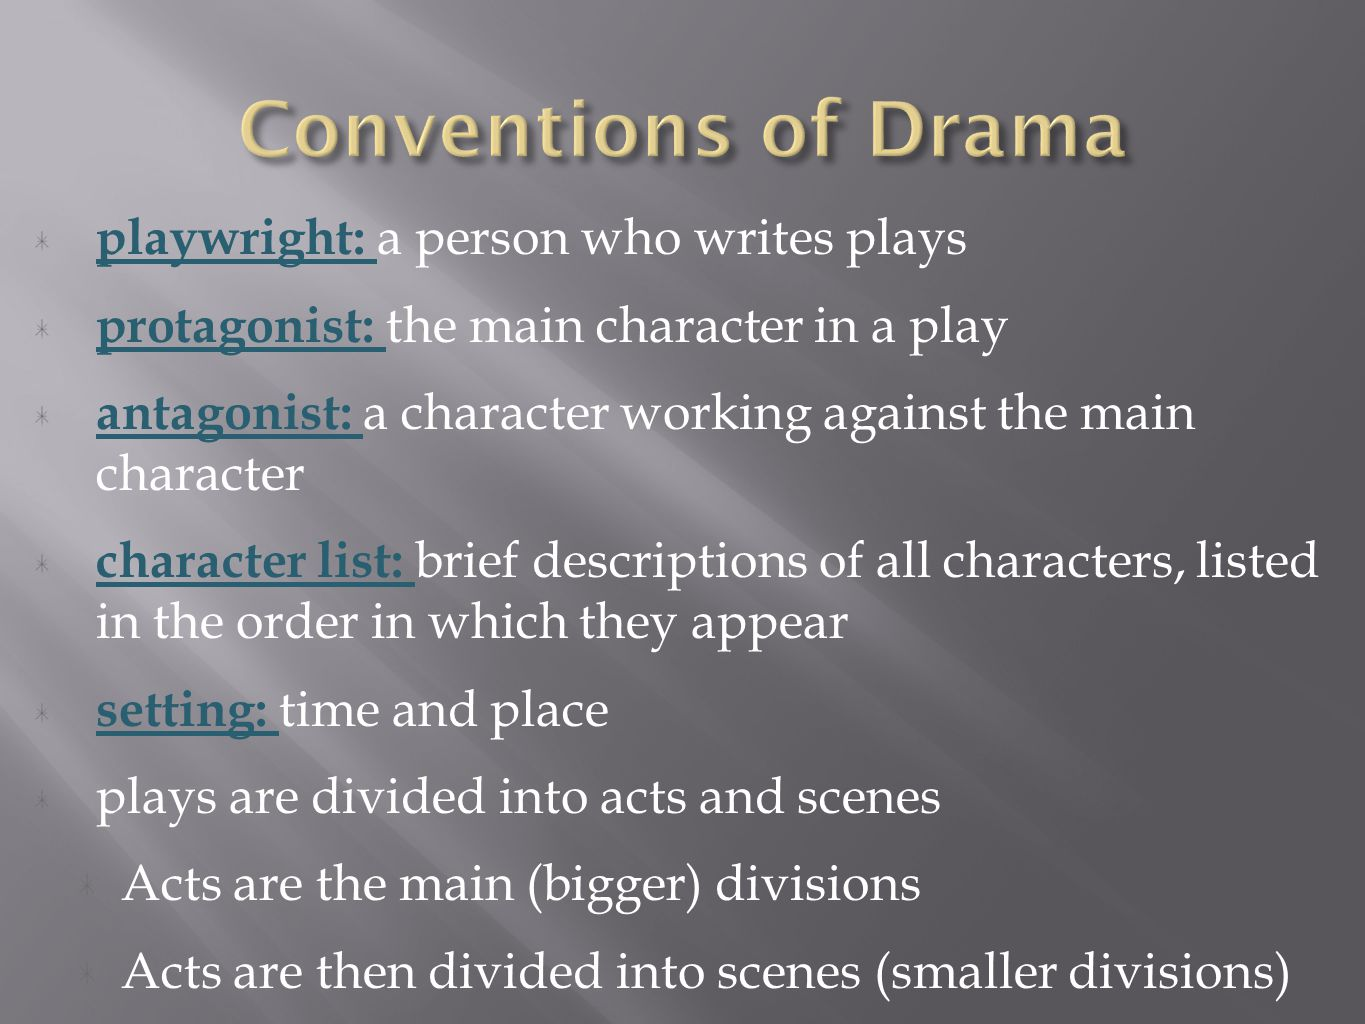 playwright: a person who writes plays protagonist: the main character in a play antagonist: a character working against the main character character list: brief descriptions of all characters, listed in the order in which they appear setting: time and place plays are divided into acts and scenes Acts are the main (bigger) divisions Acts are then divided into scenes (smaller divisions)